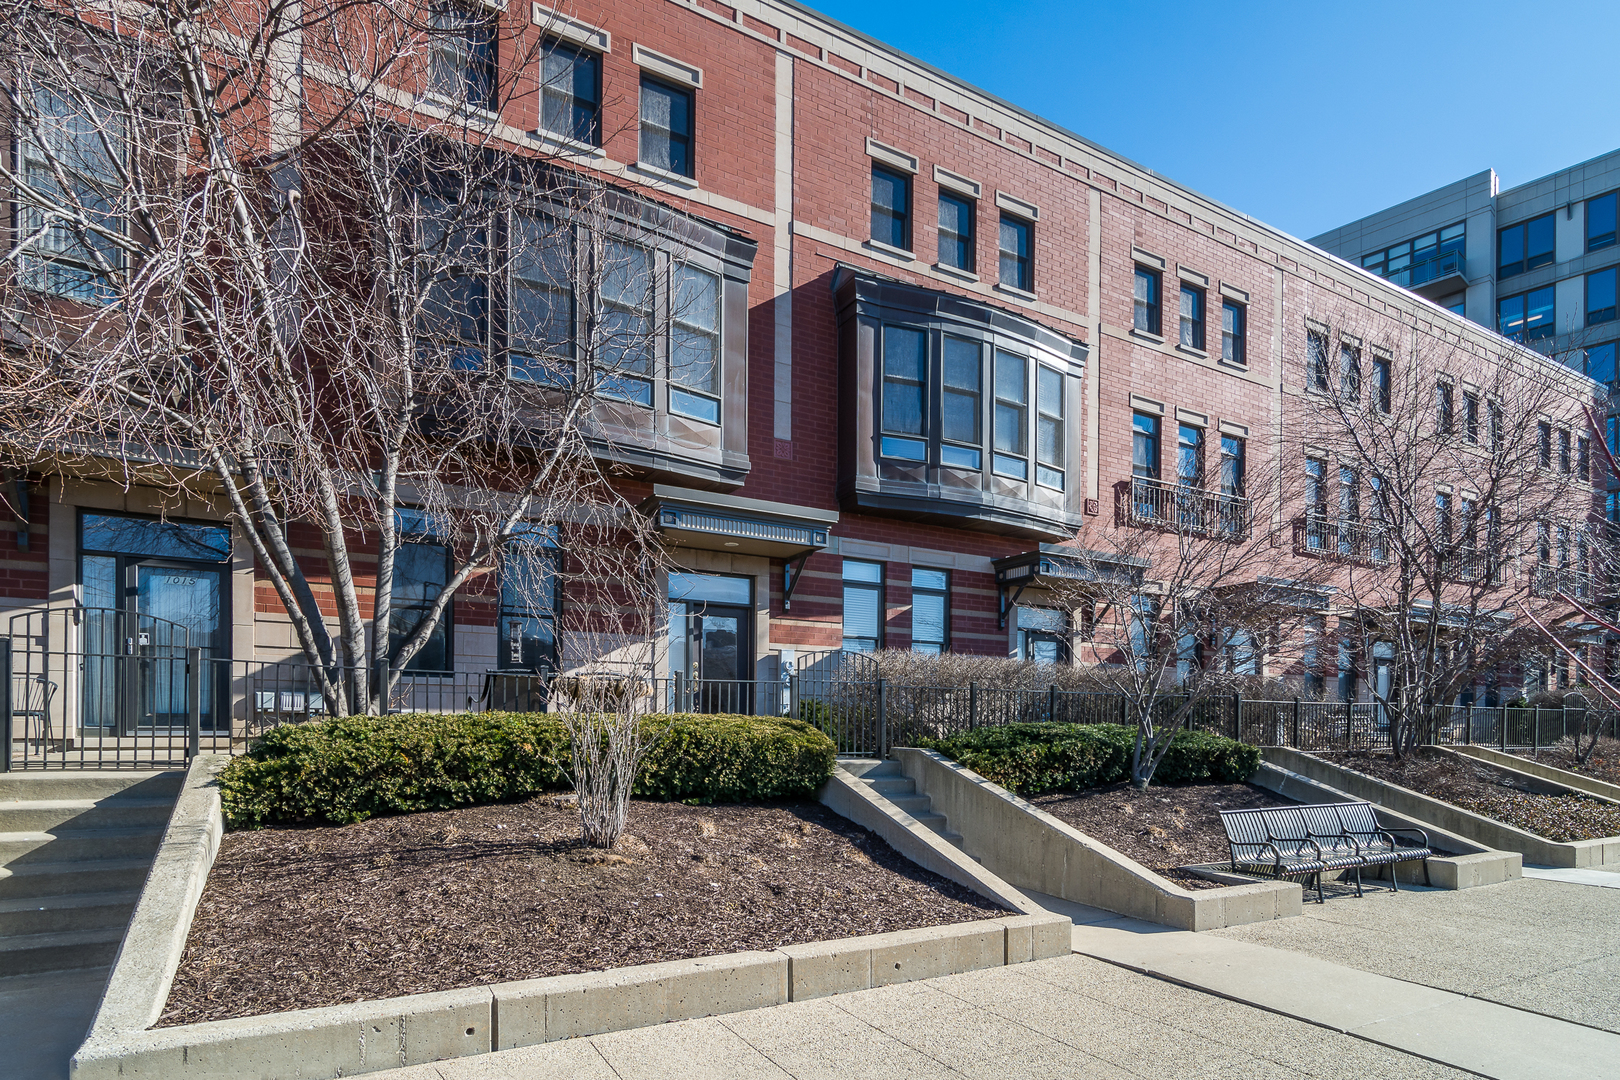 1029 NORTH RIVERWALK STREET, CHICAGO, IL 60610